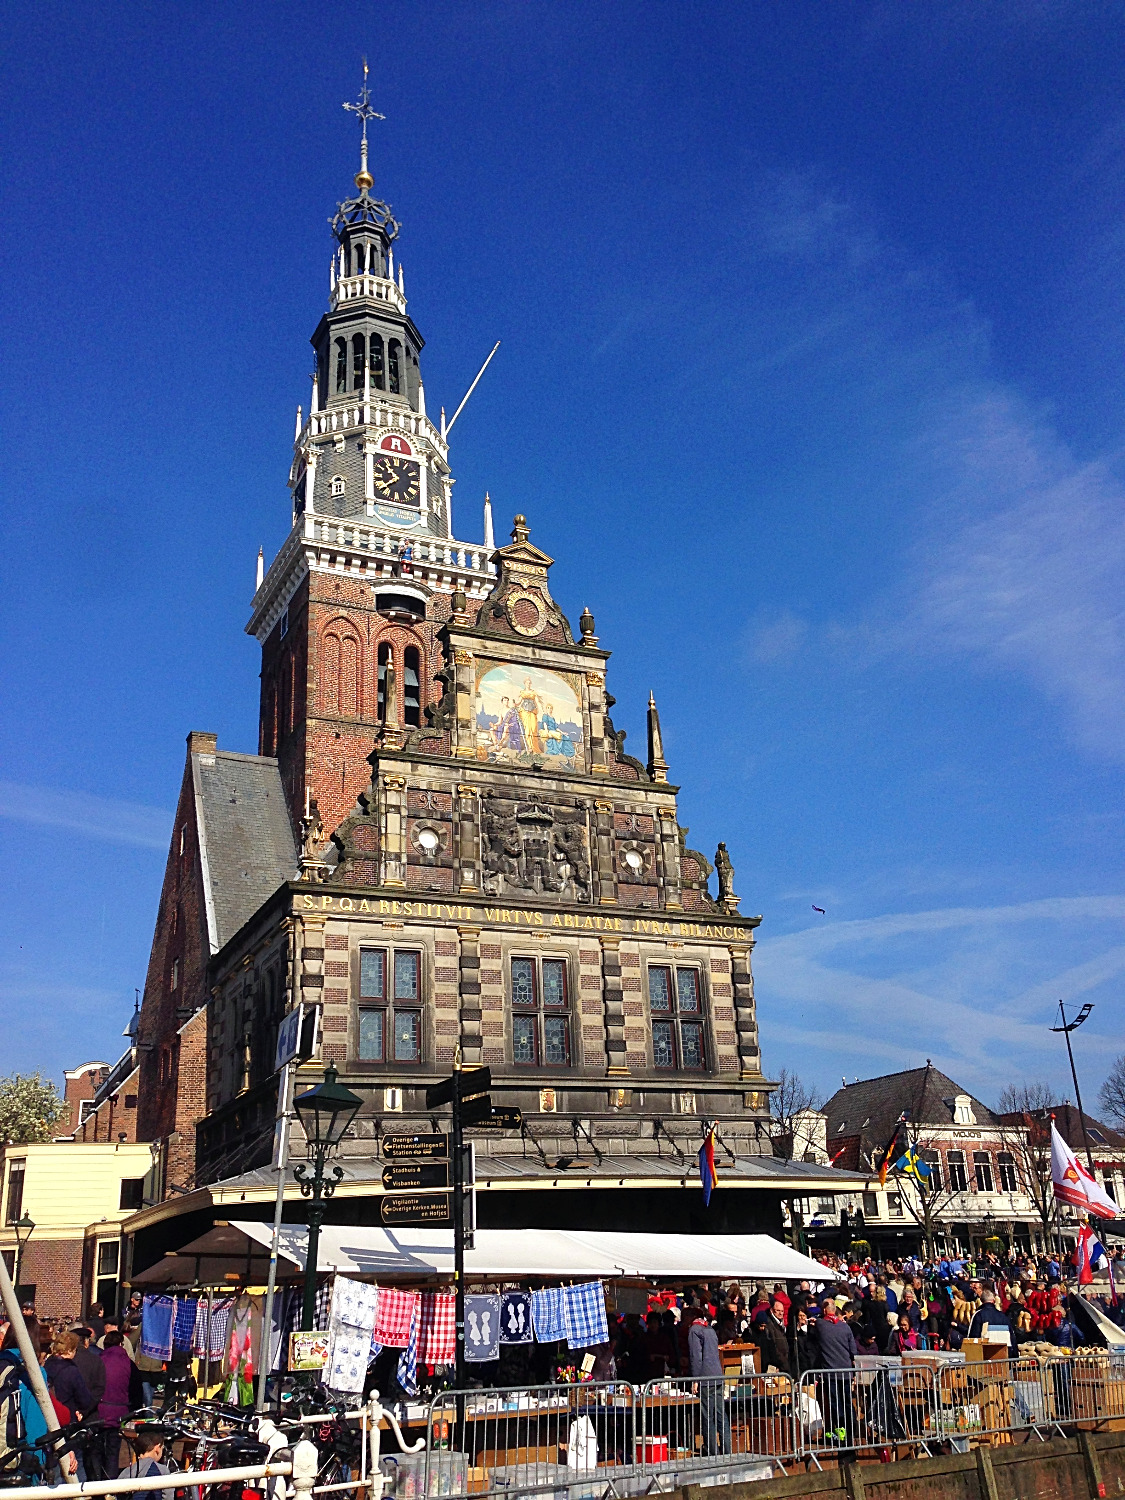 The Waag (Weigh House)